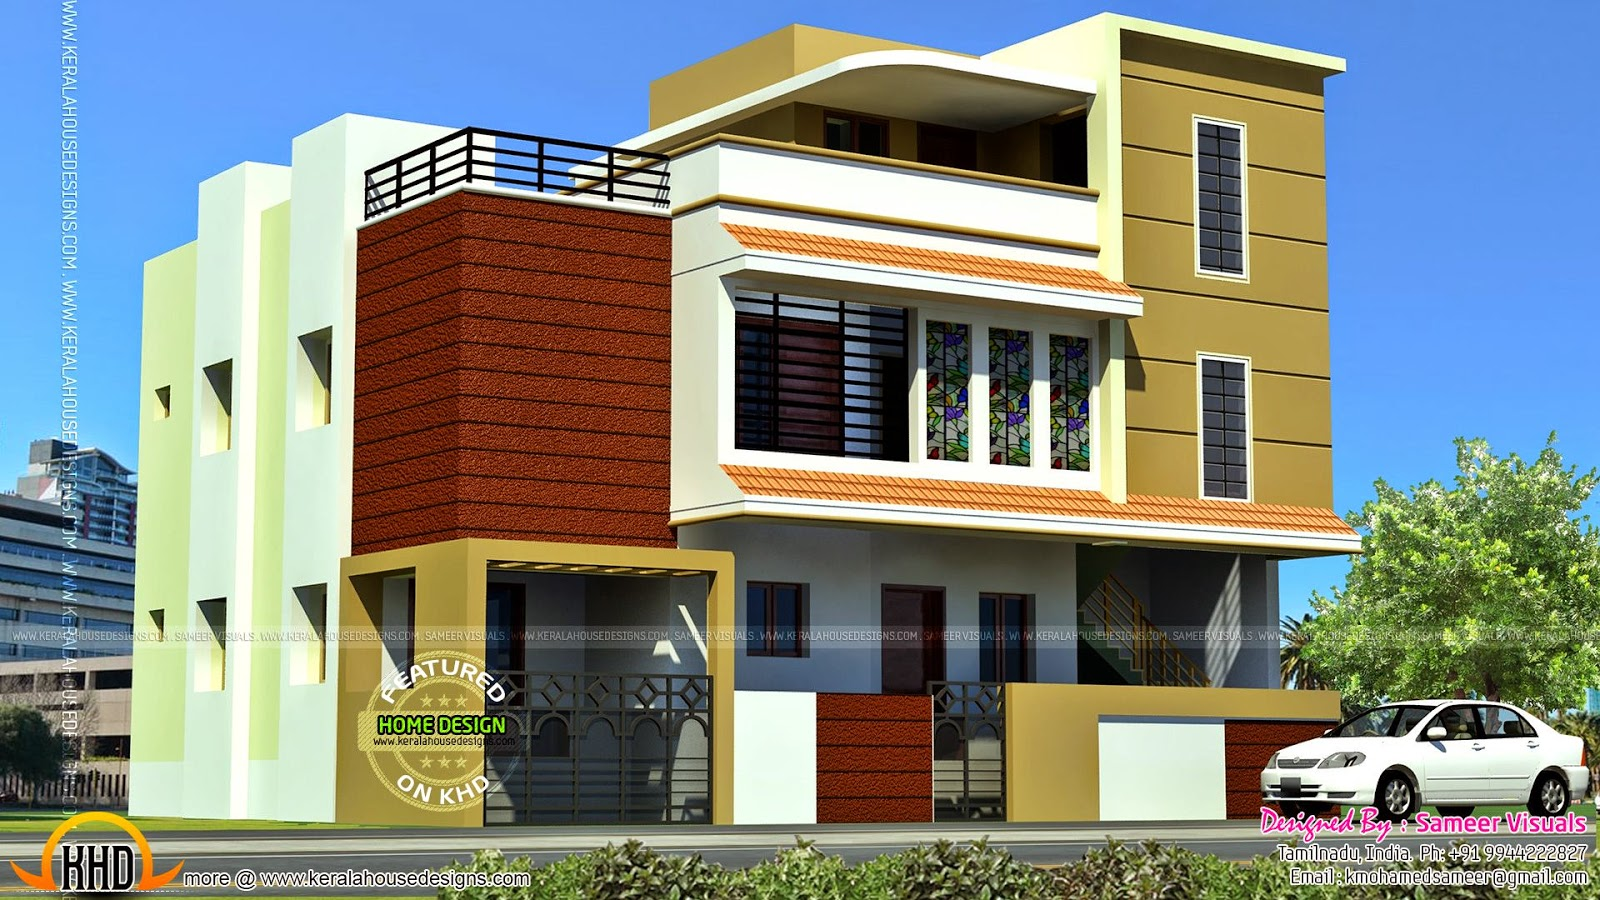 Latest model houses in tamilnadu house best design for Latest model house design